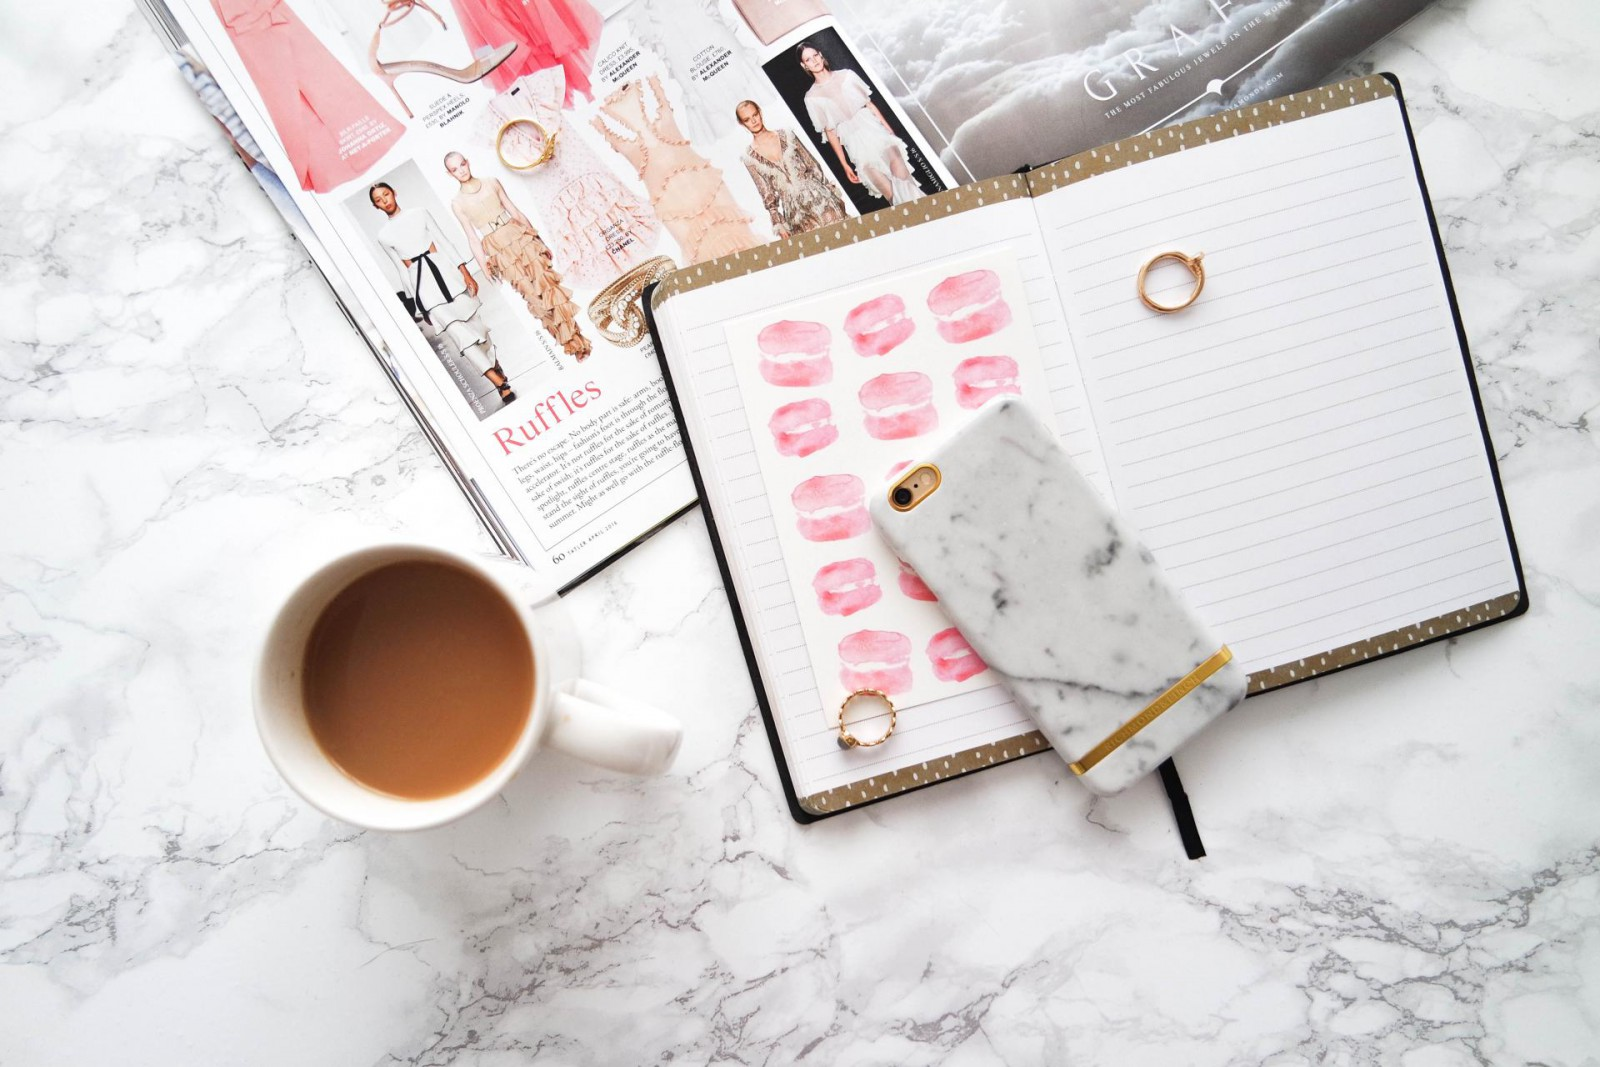 Building Relationships Between Brands and Bloggers